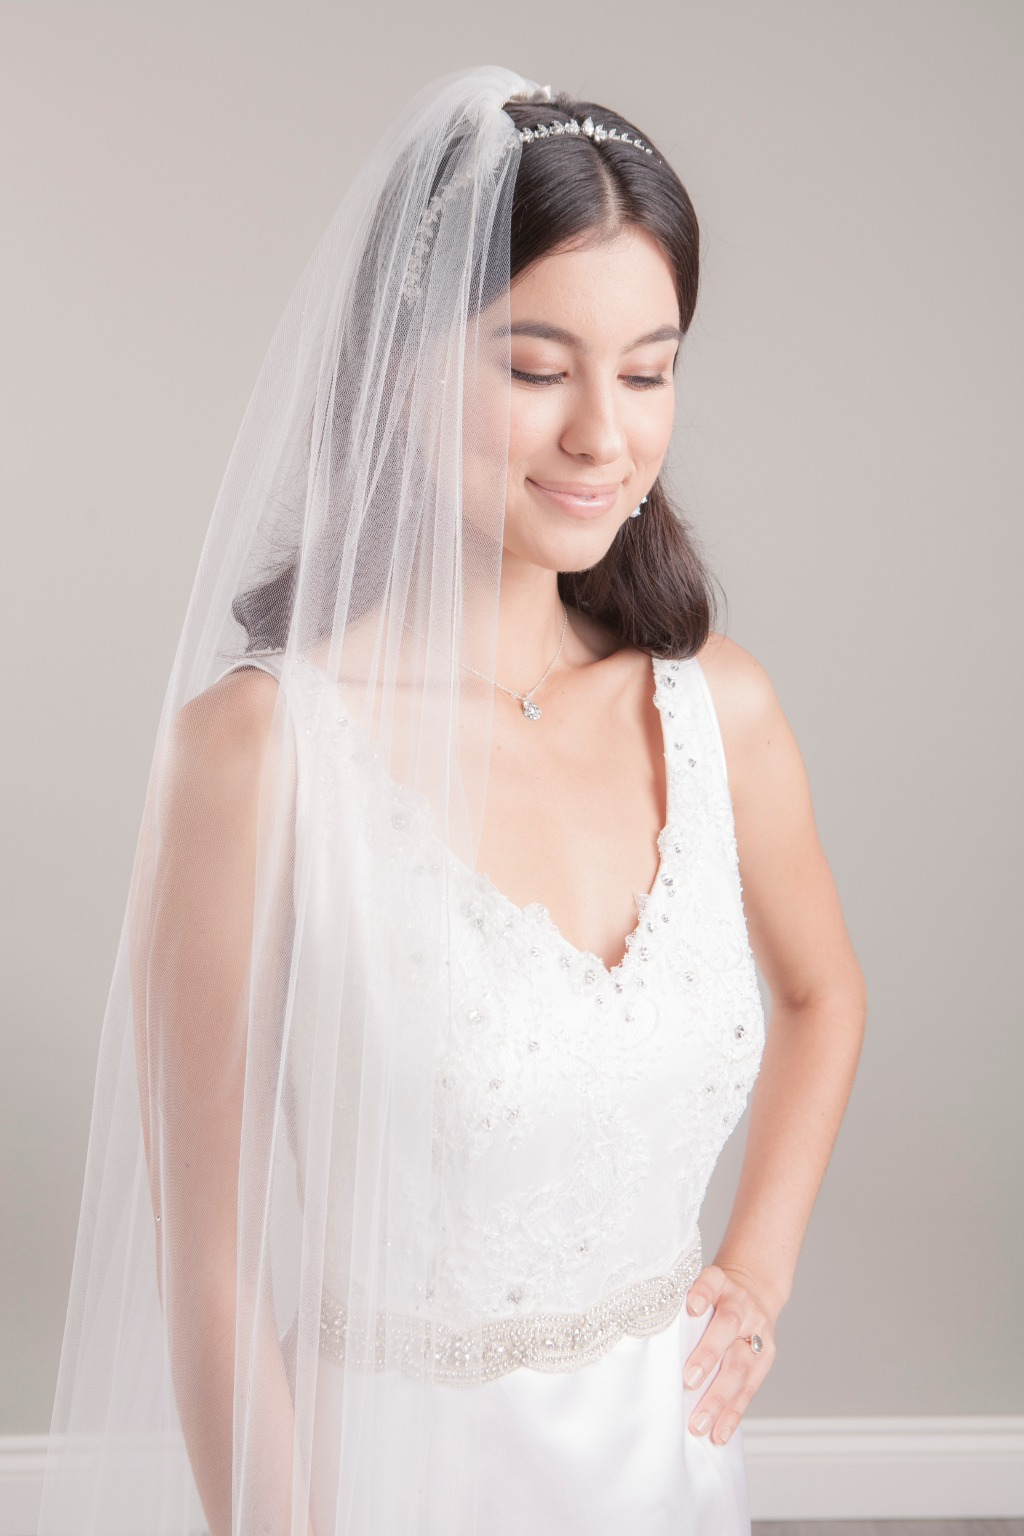 One tier cathedral veil with ombre effect scattered Swarovski stones. Finished with our signature micro-metallic edge.